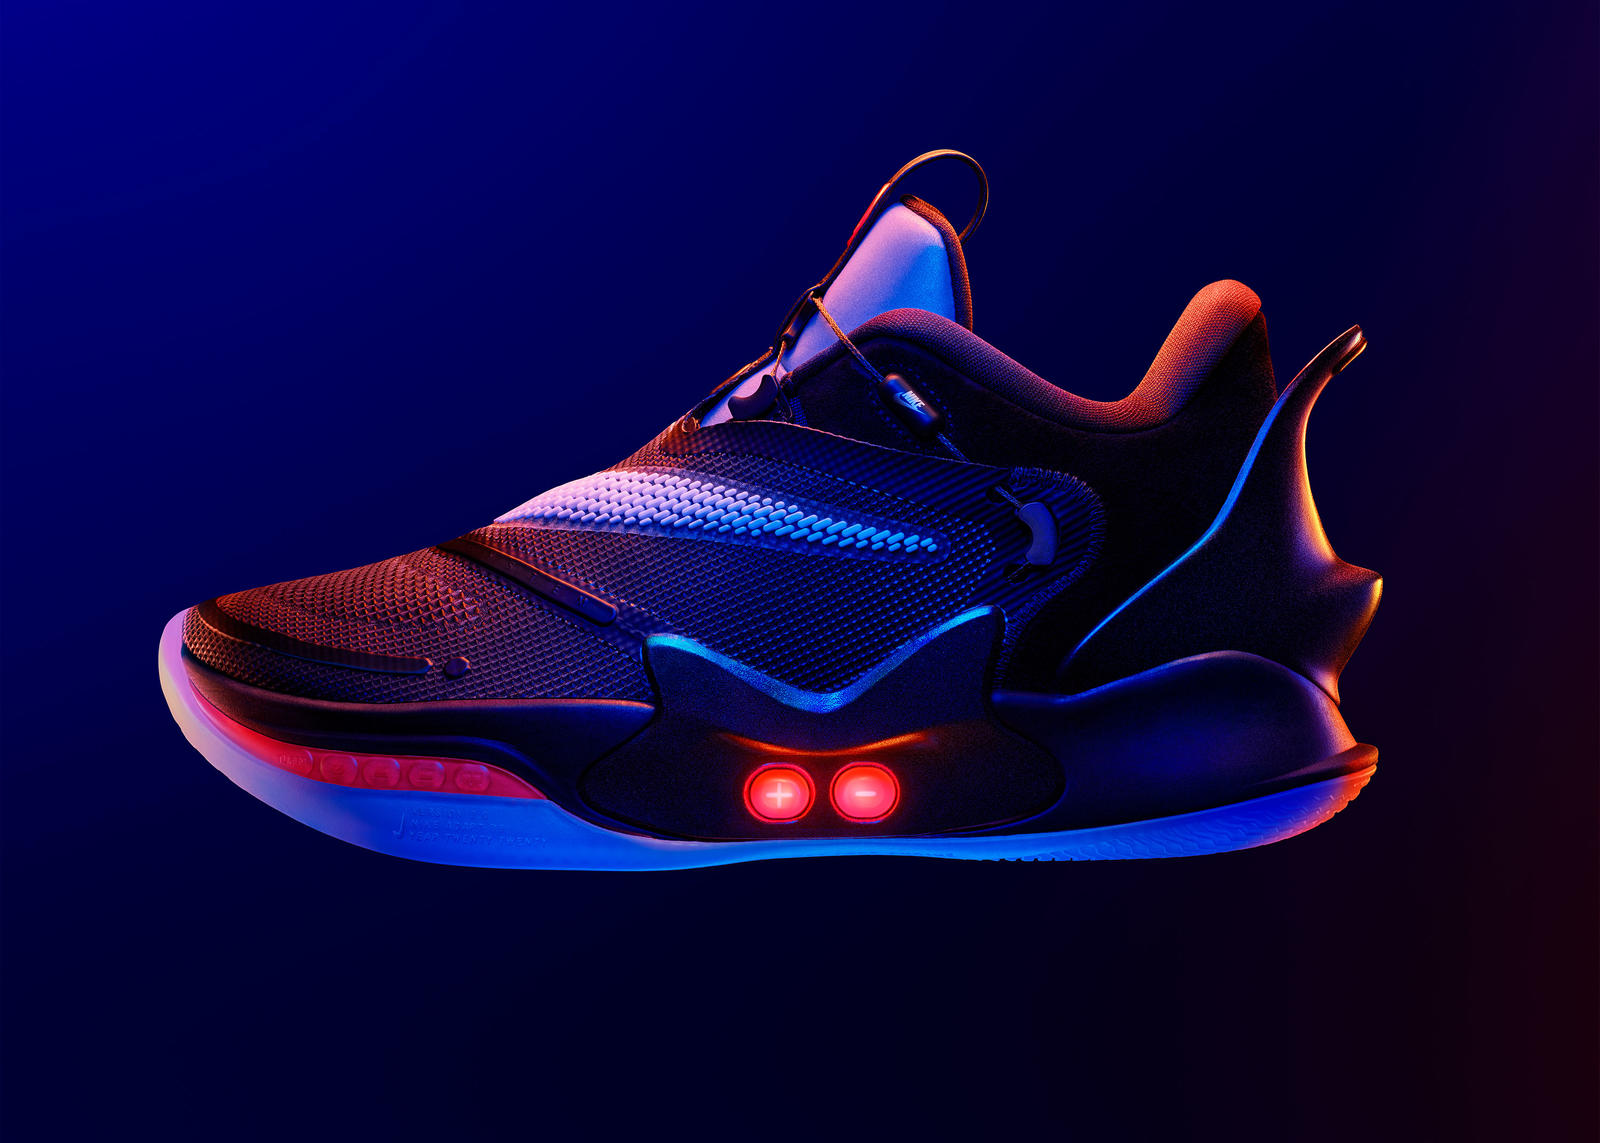 electrodo Pantera por favor confirmar  Nike Adapt BB 2.0 Official Images and Release Date - Nike News